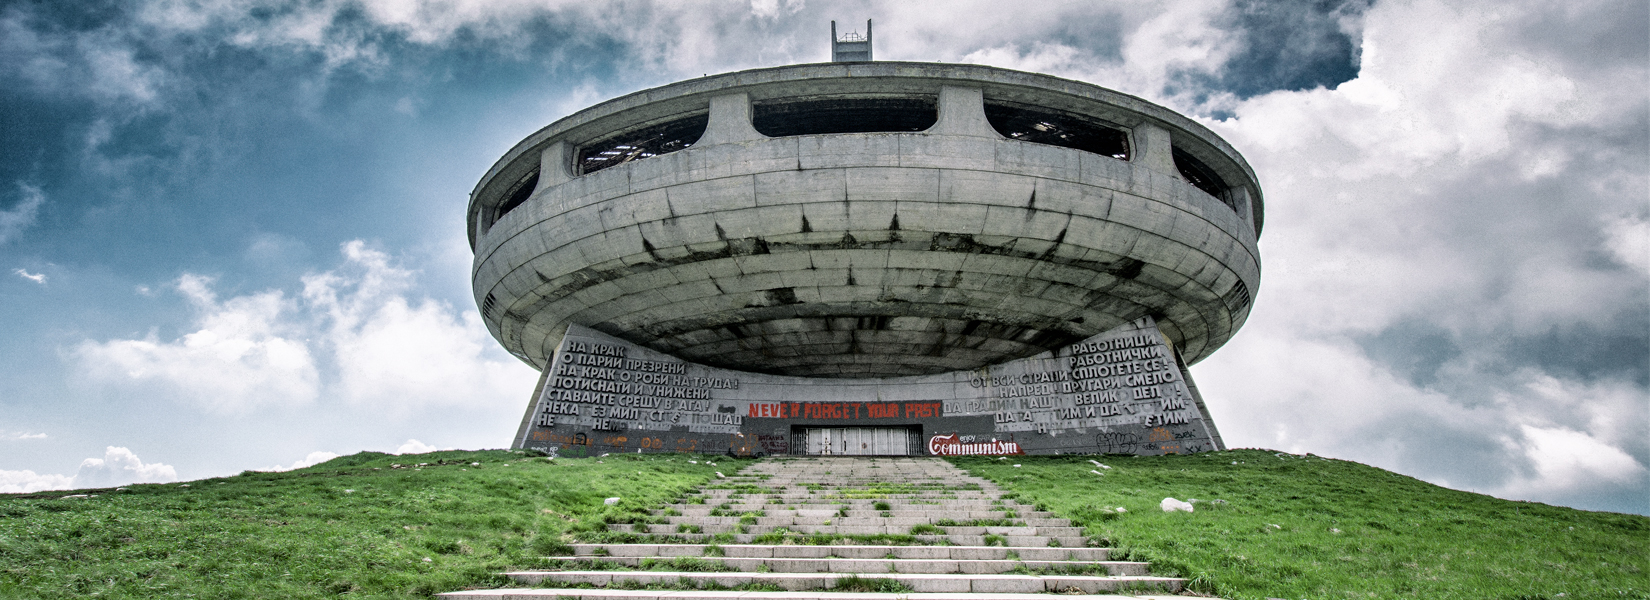 The Buzludzha monument